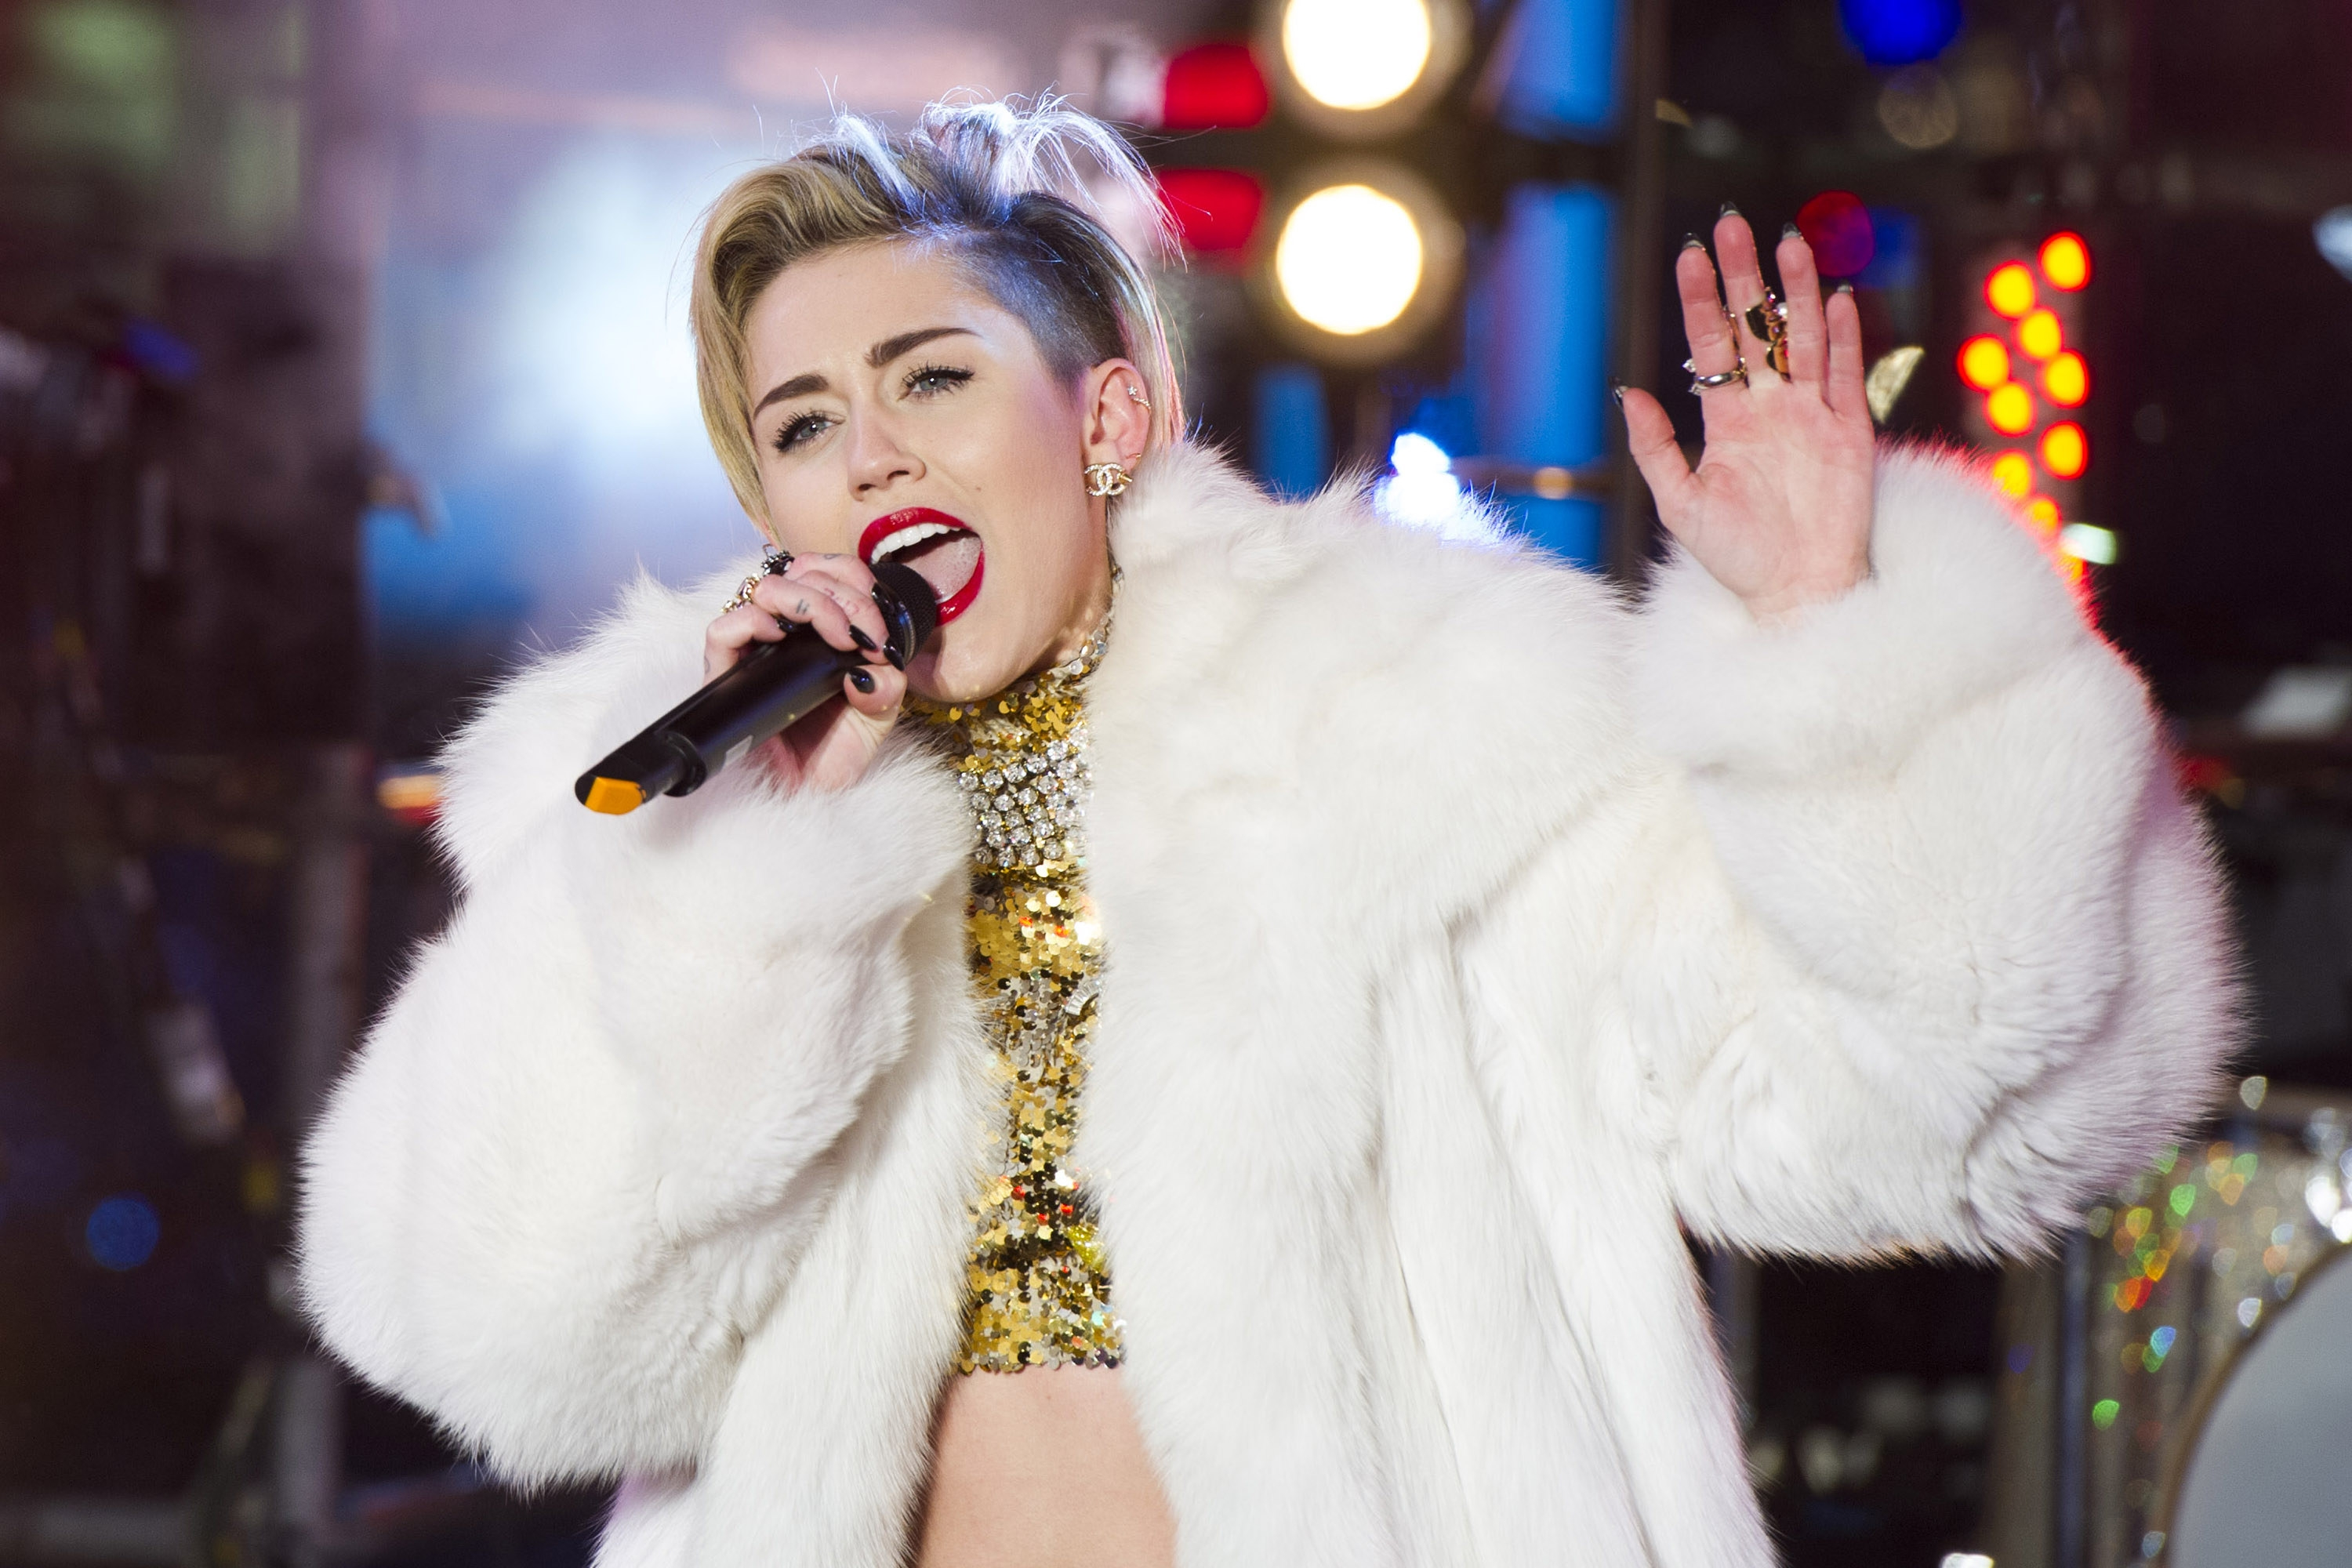 Miley Cyrus says she will be focusing on her singing and not dance moves when her tour kicks off Feb. 14 .